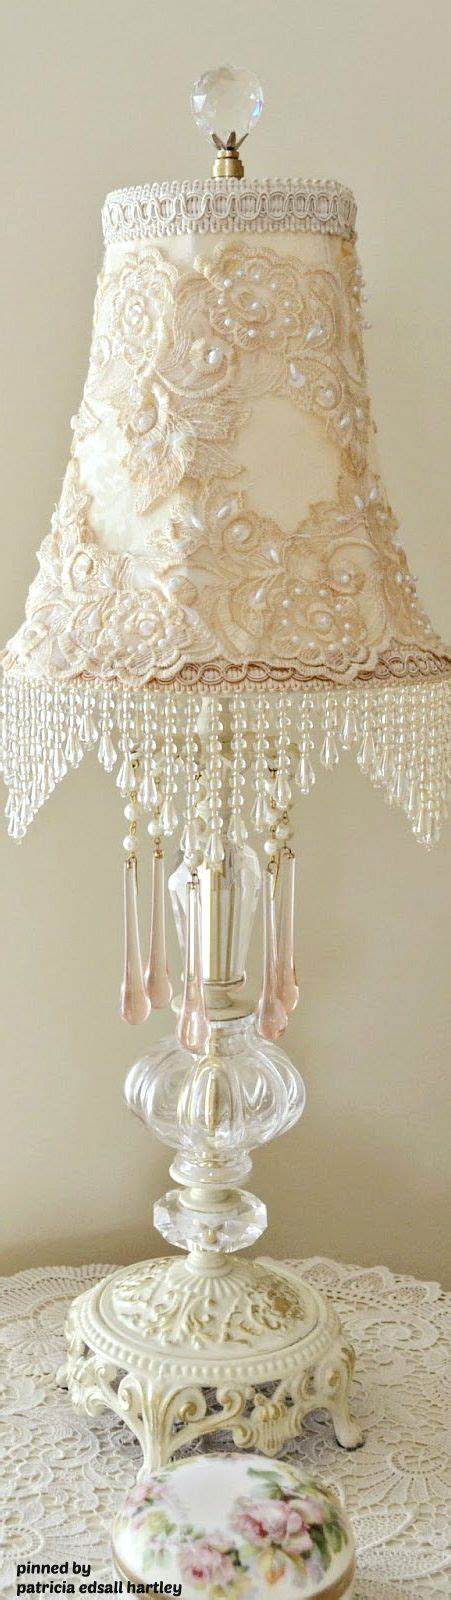 shabby chic l shades 728 best shabby chic lshades images on pinterest